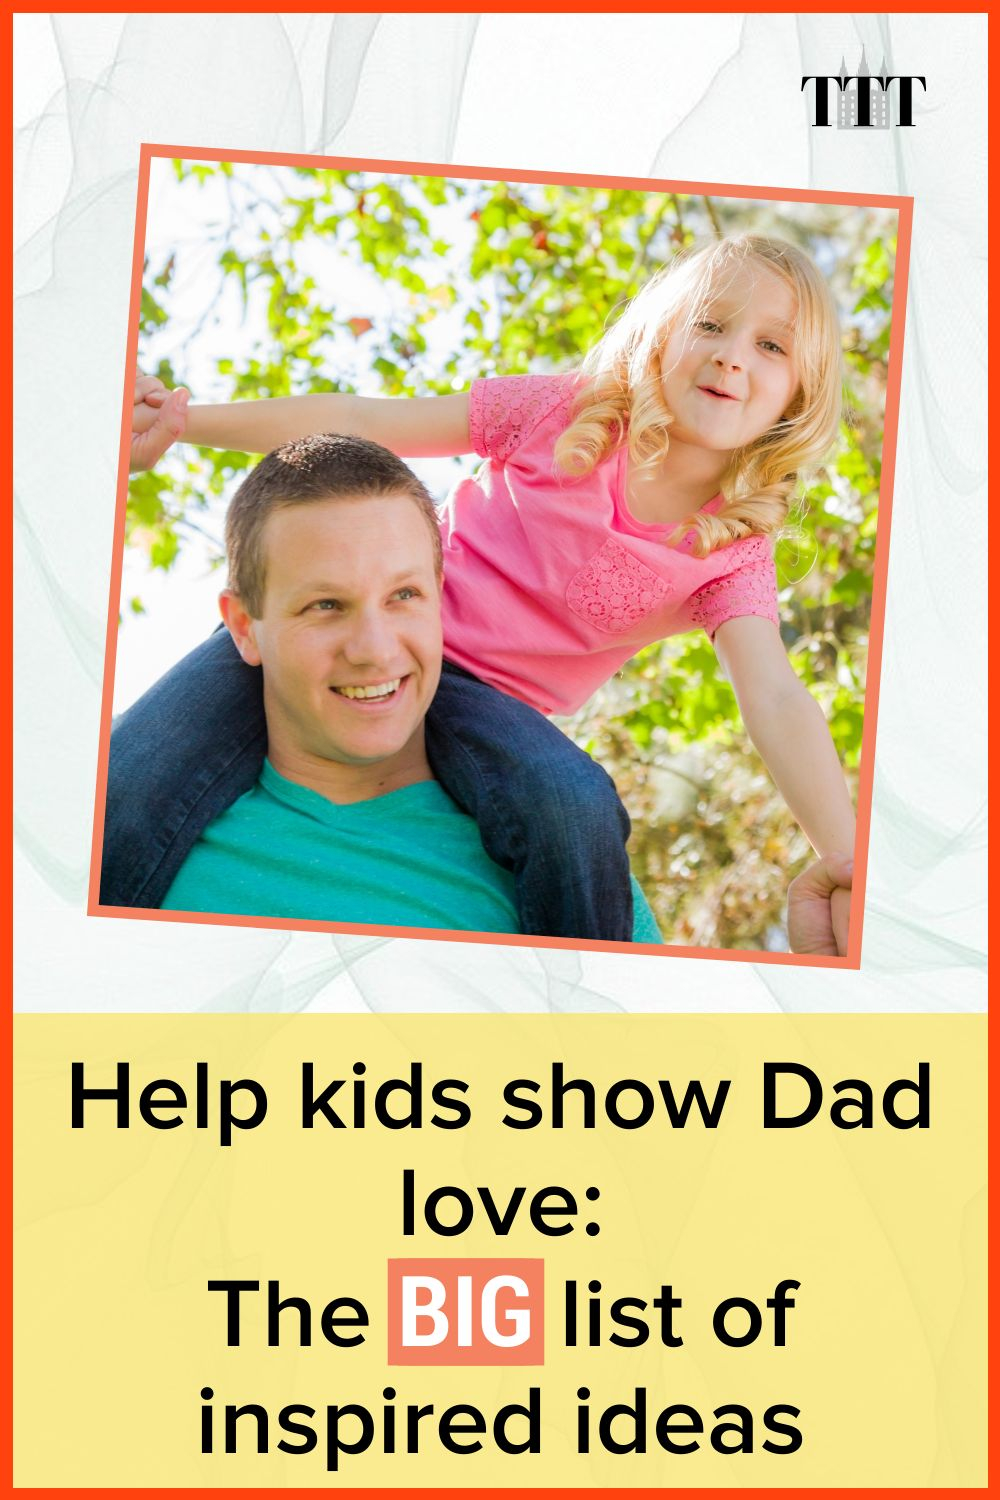 Help kids show Dad Love: The Big List of inspired ideas